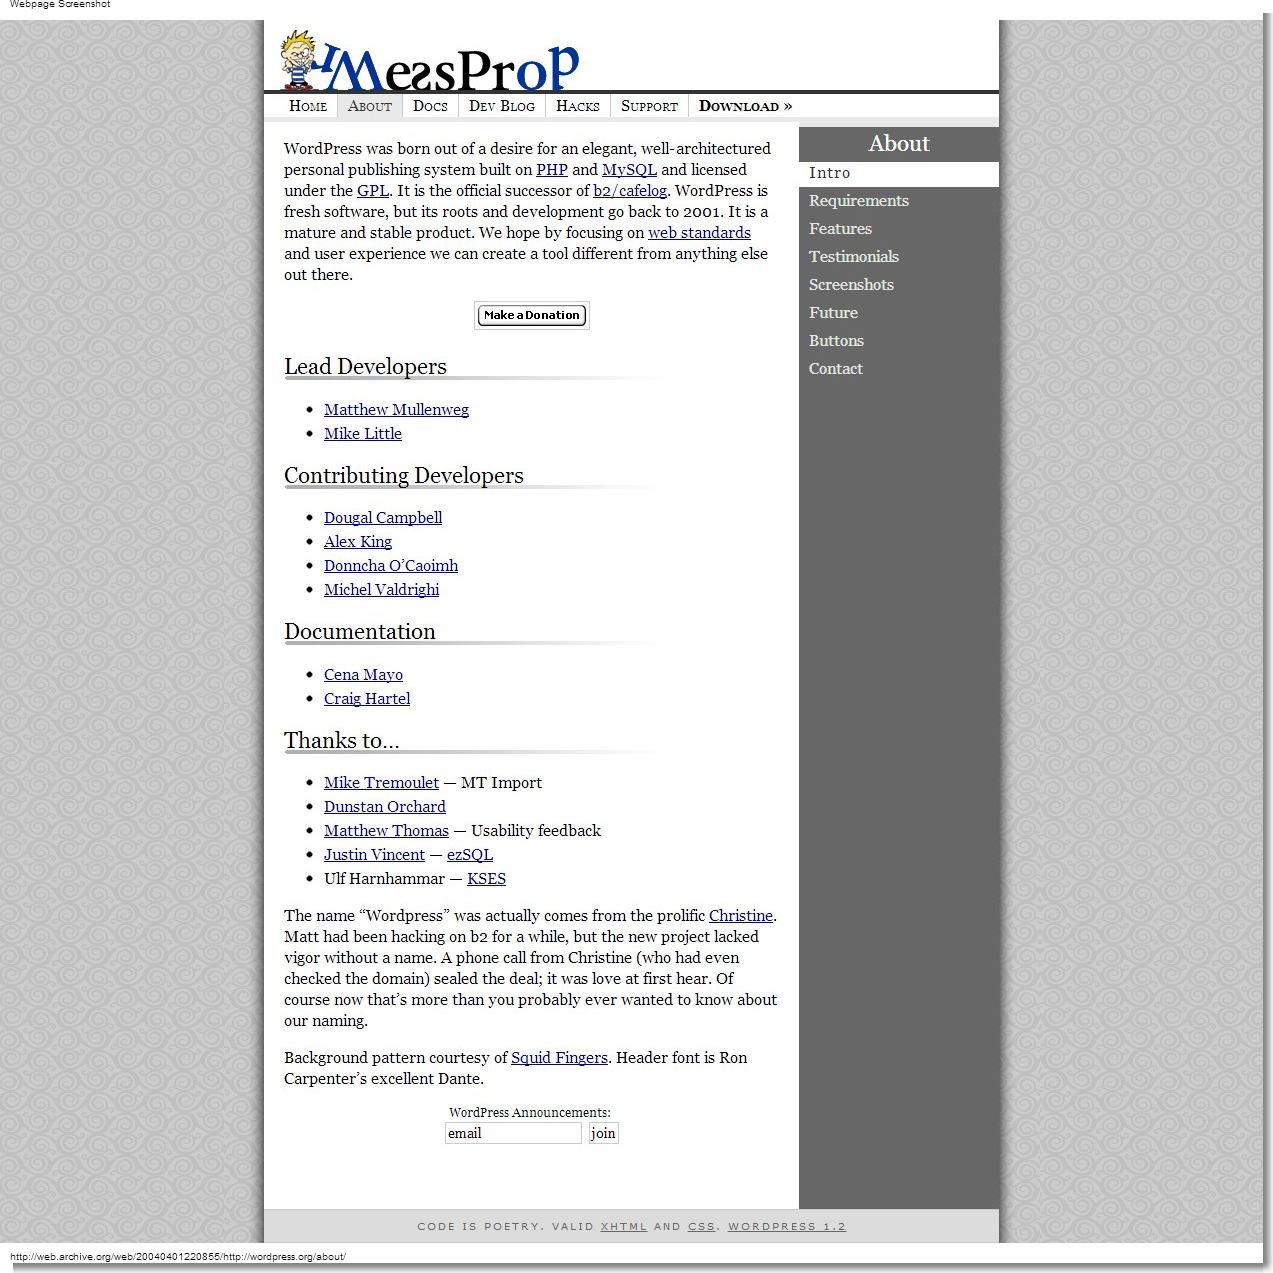 March 24, 2004 - WordPress - About